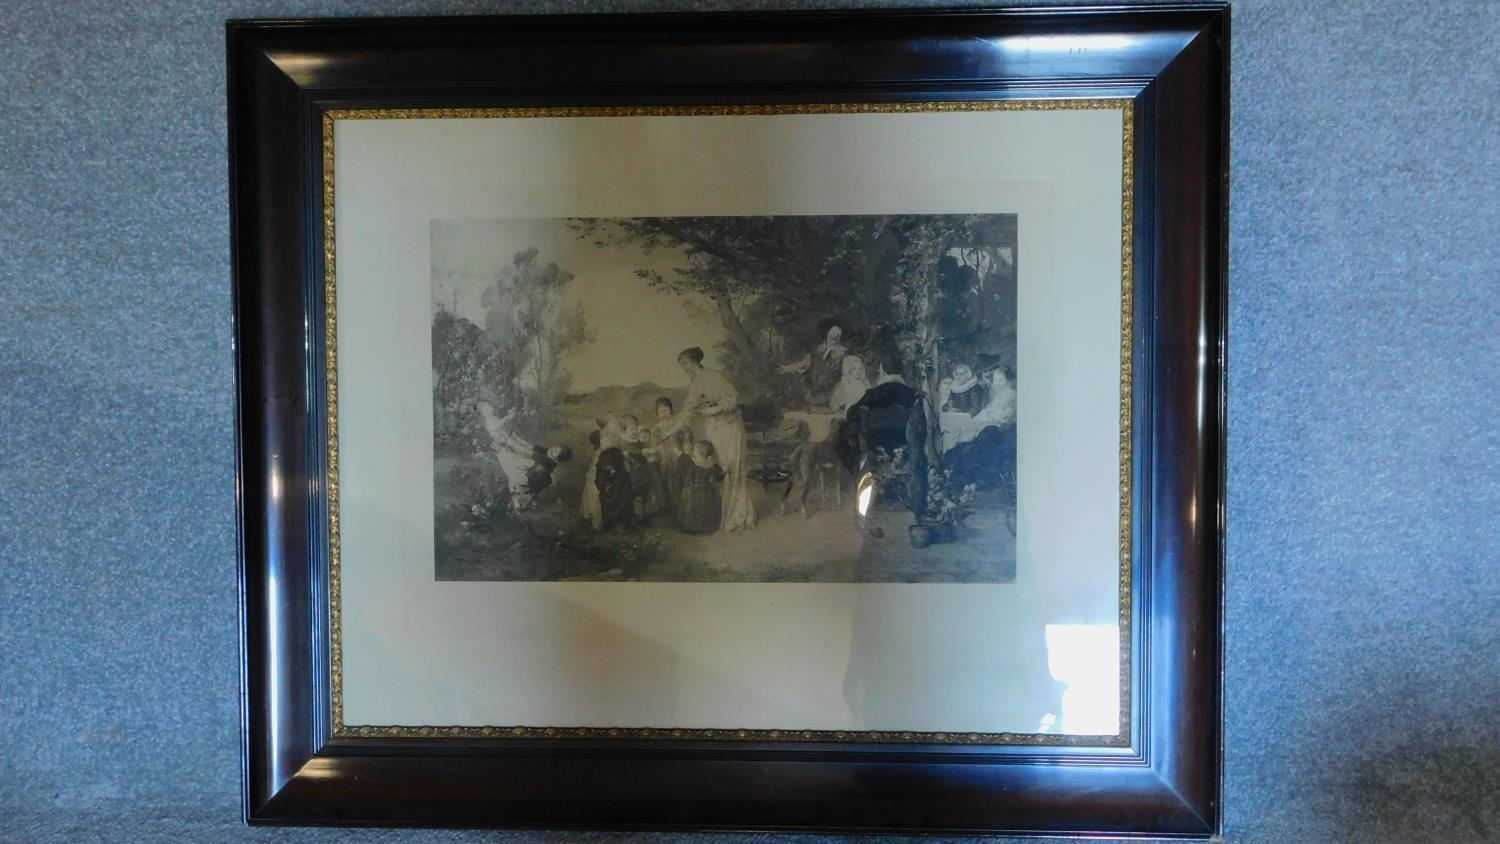 A large late 19th century glazed and framed print, Ein Maitag, after Fritz Kaulbach, by Franz